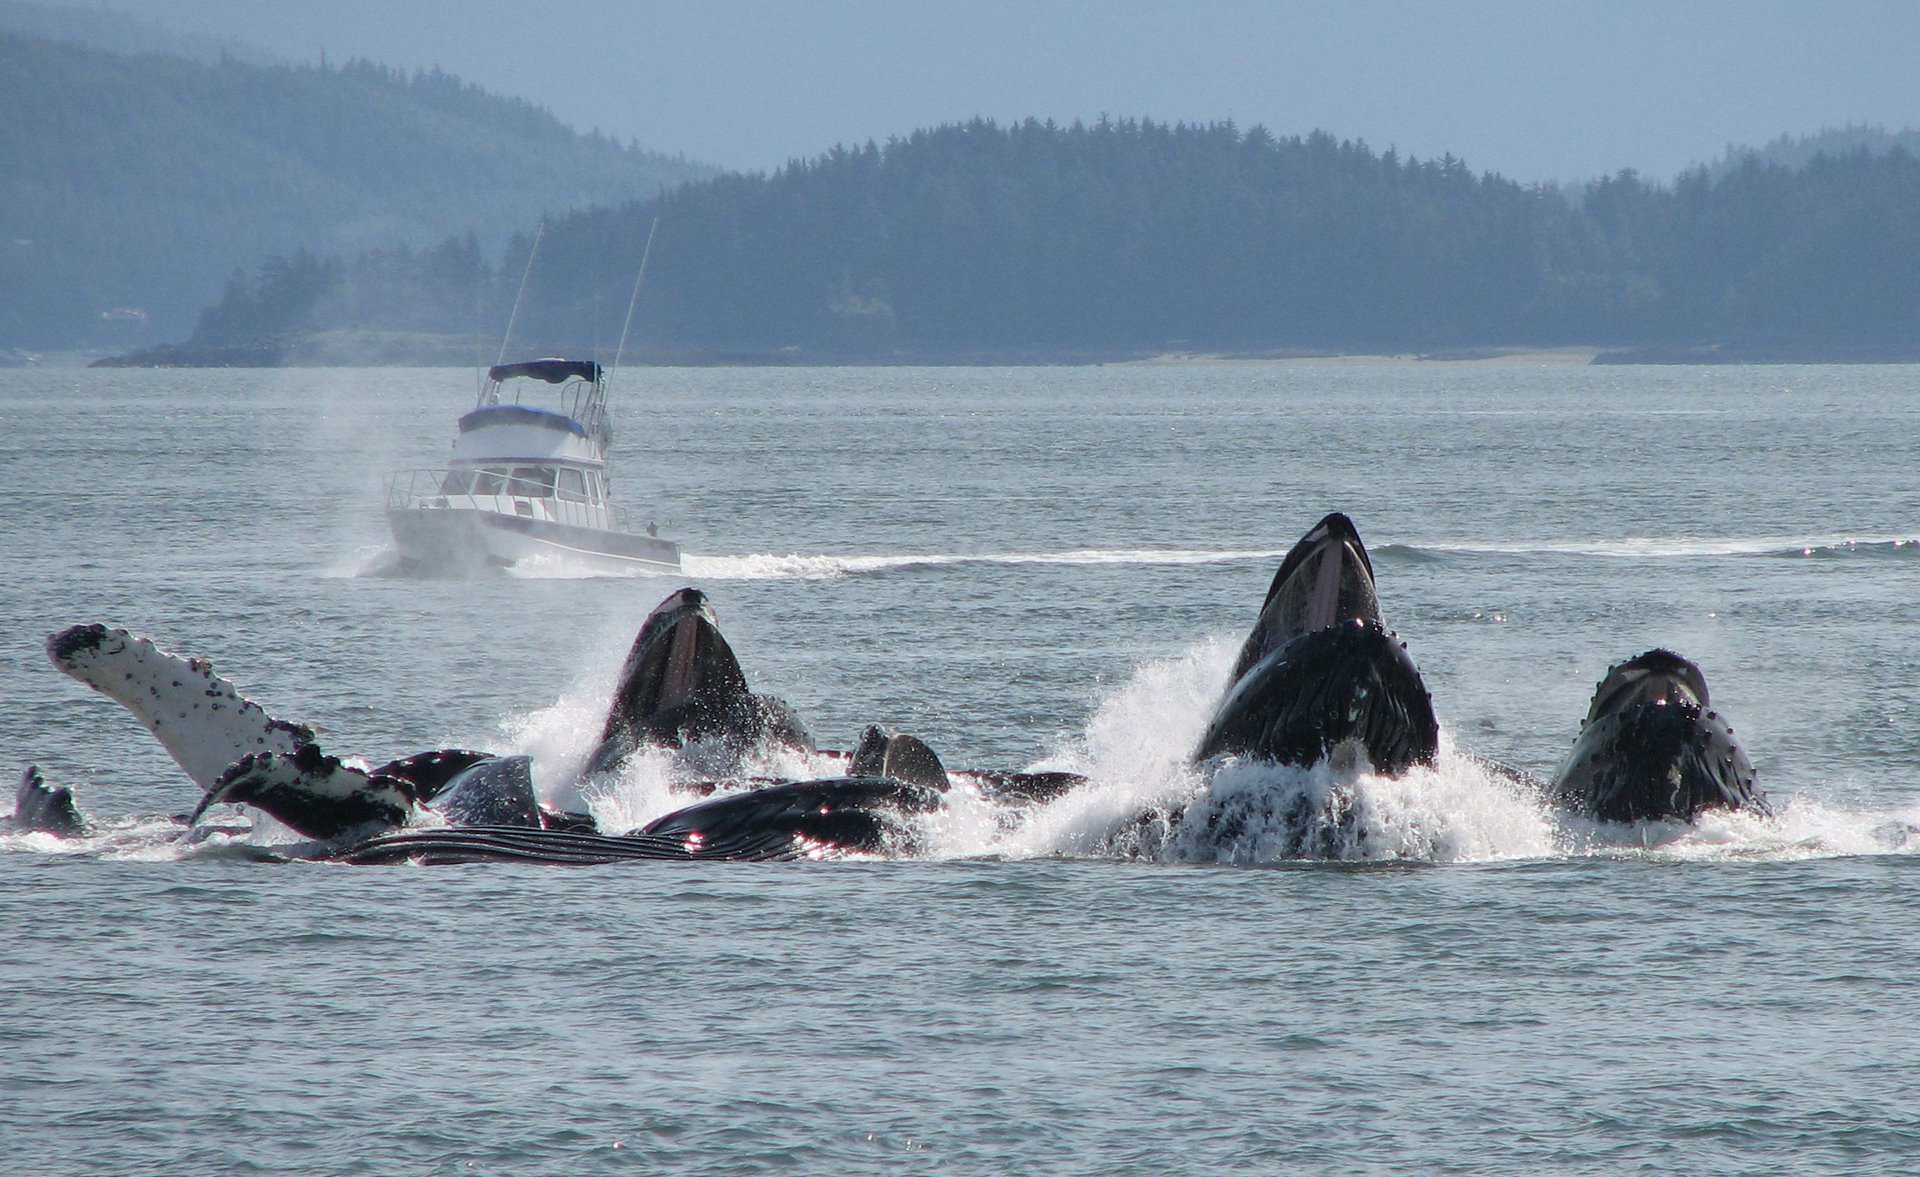 Humpback whales feeding as a group in a method known as bubblenetting.